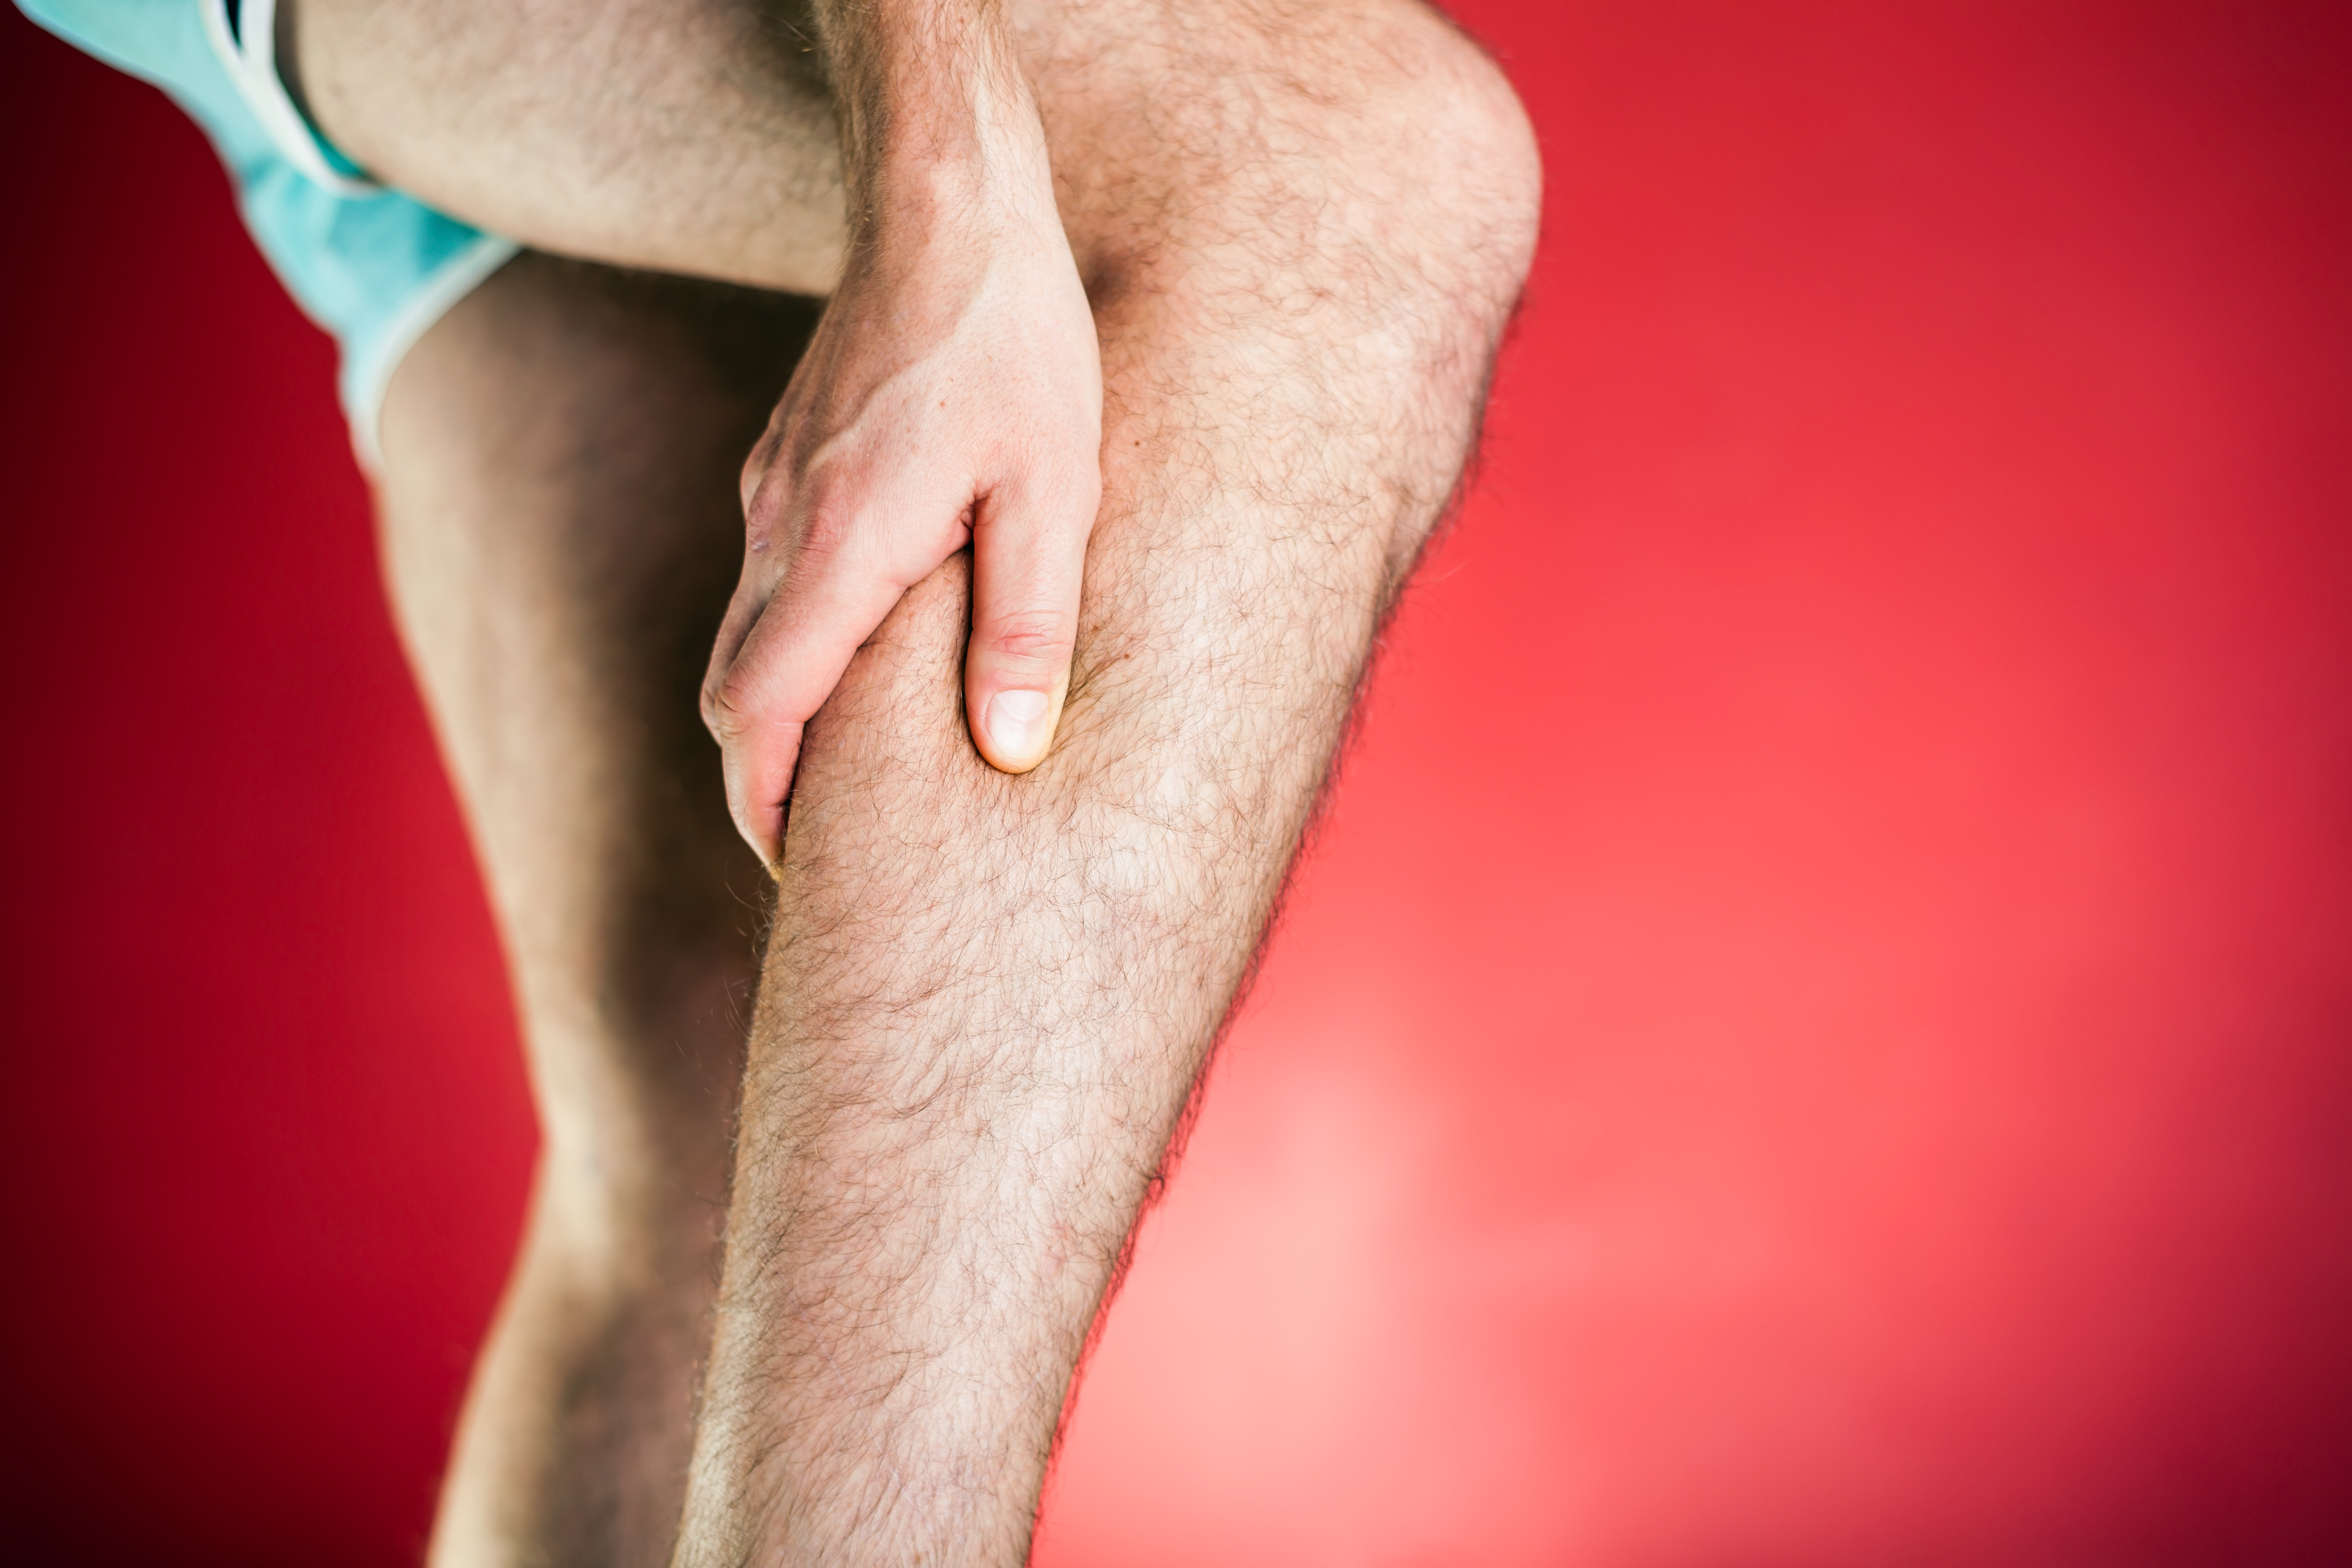 New Treatment For Muscle Cramps And Neuromuscular Disorder Spasms ...